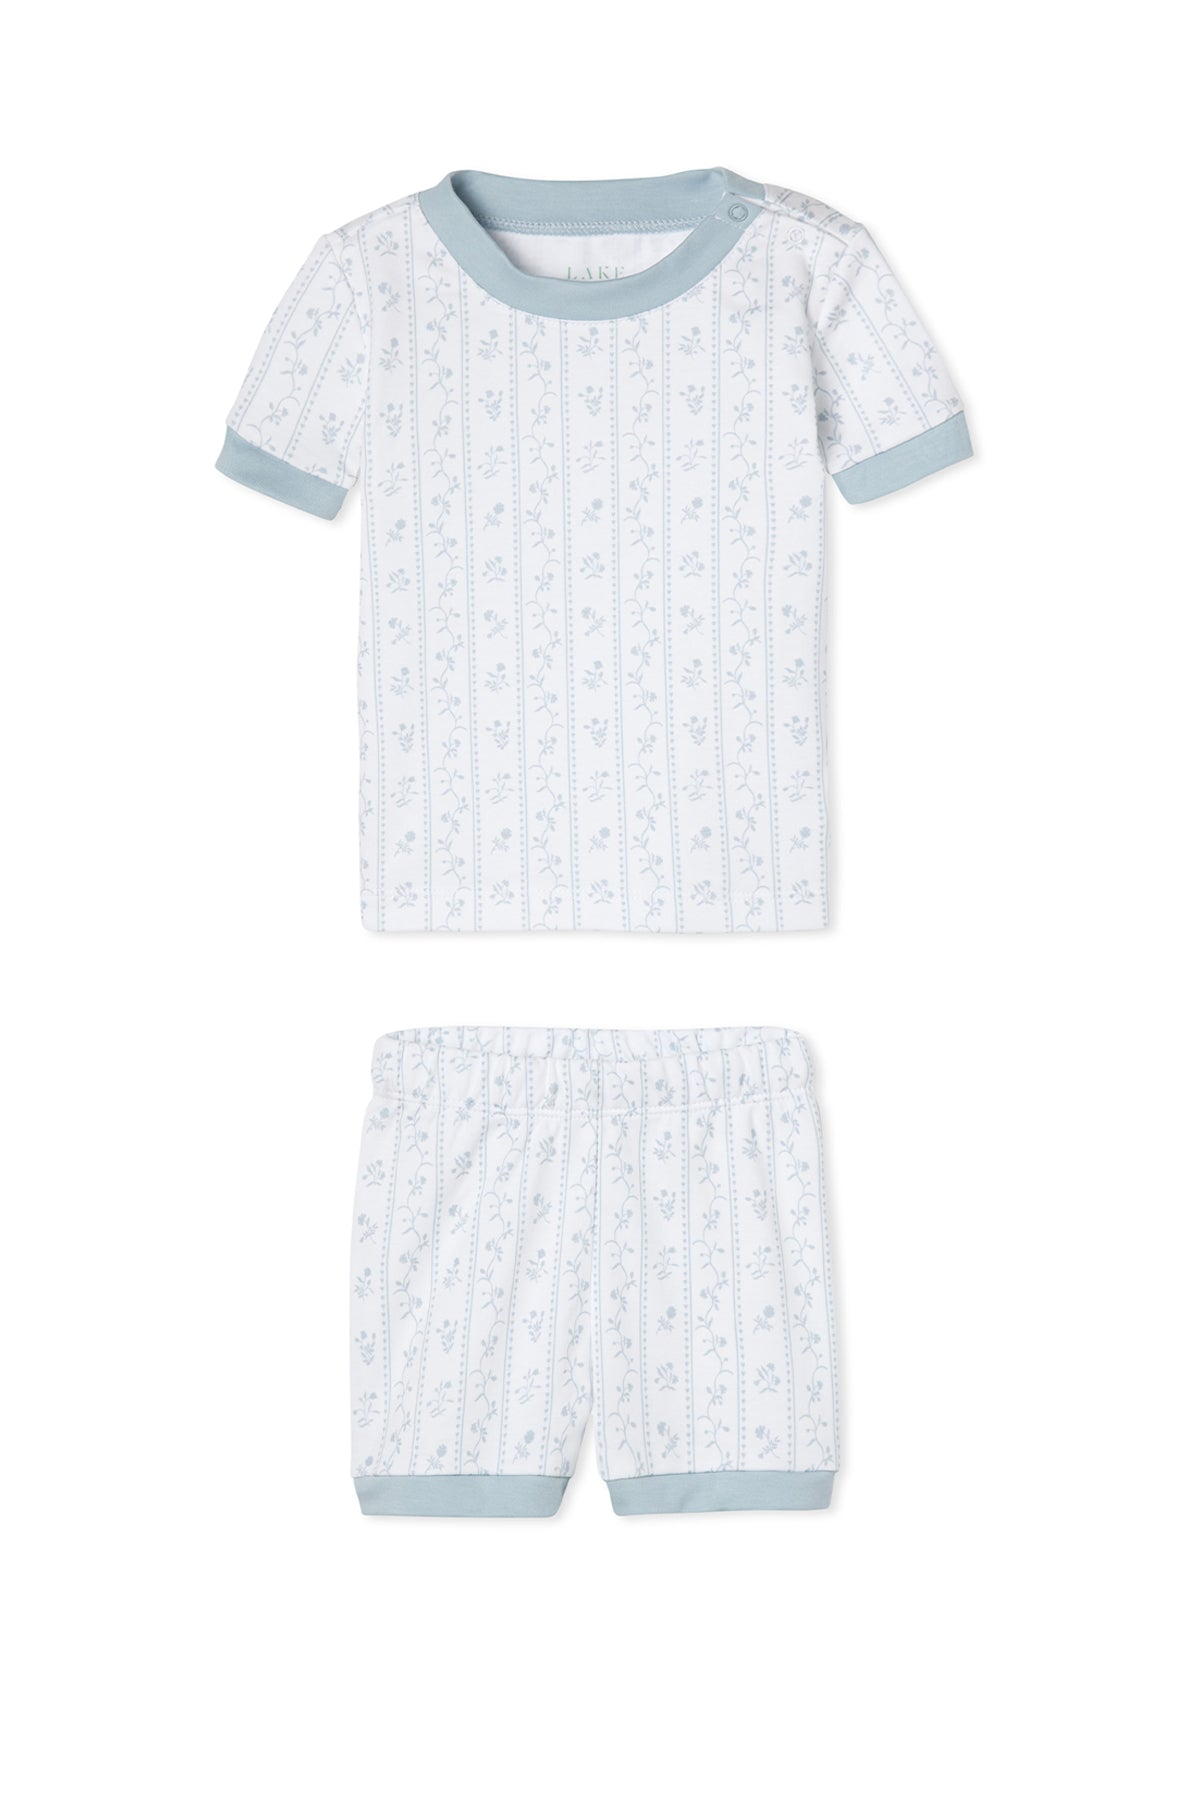 JB x LAKE Baby Shorts Set in Blue Garden